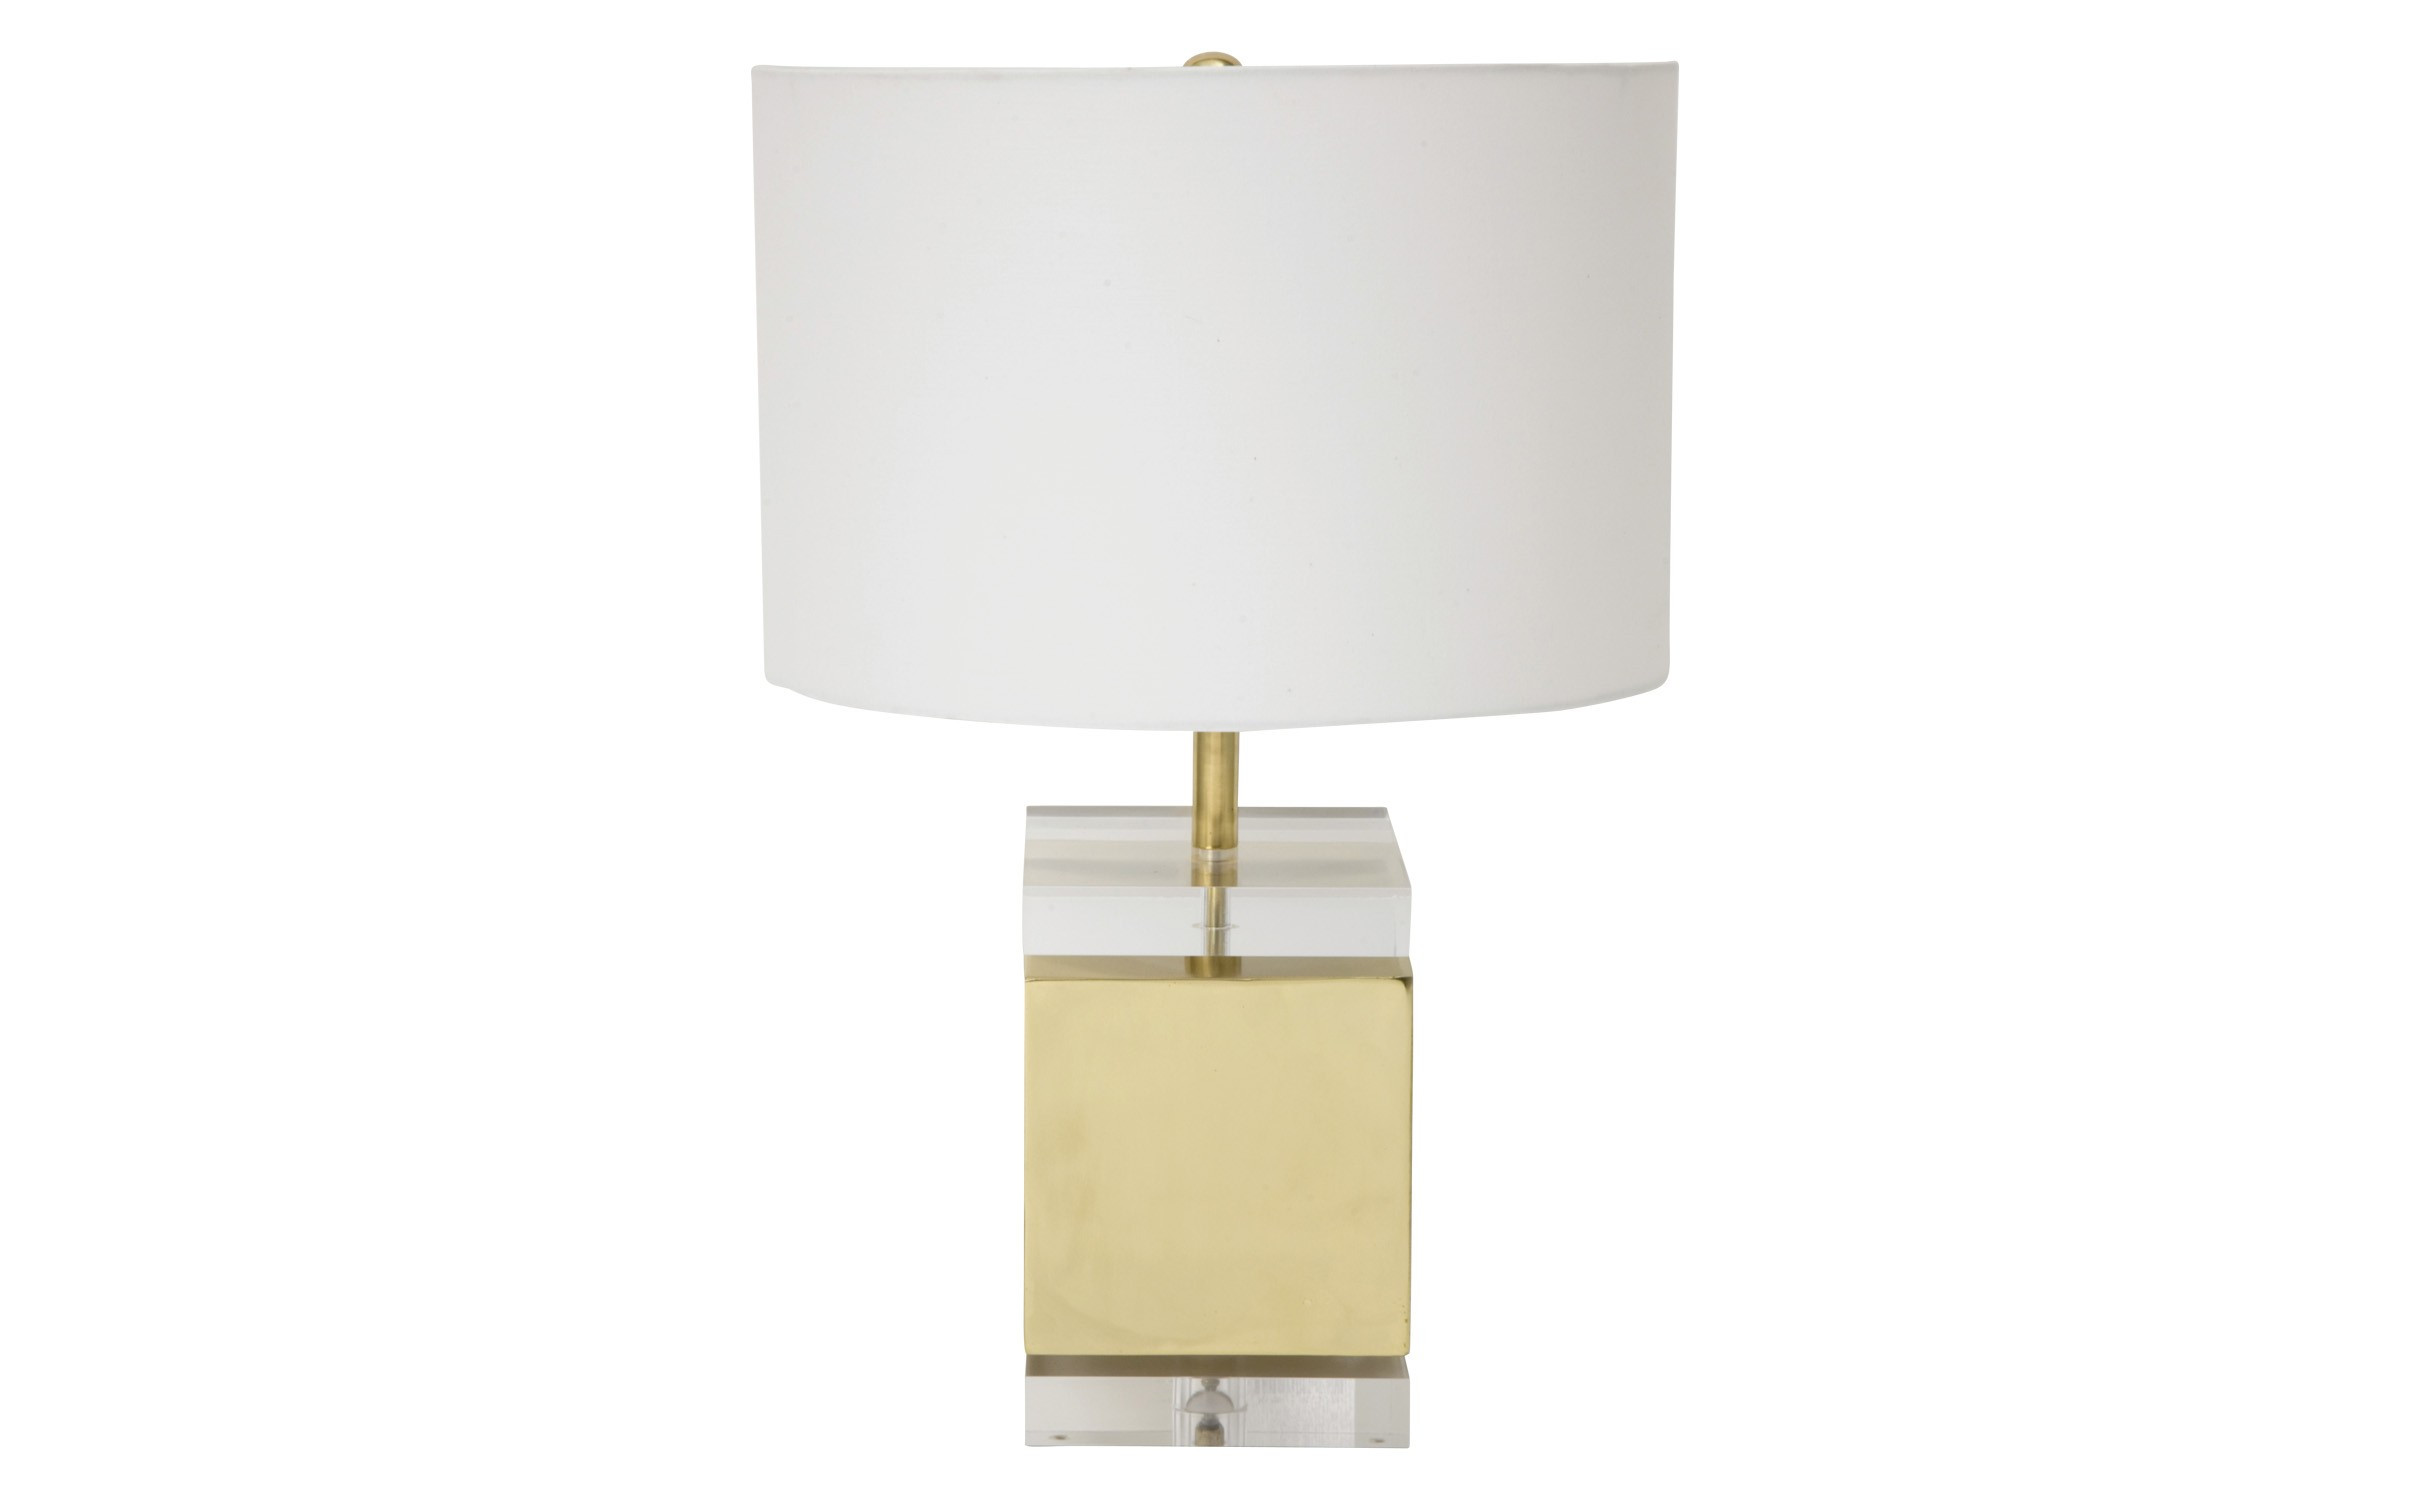 Best ideas about Small Desk Lamps . Save or Pin Harding Table Lamp Small Now.